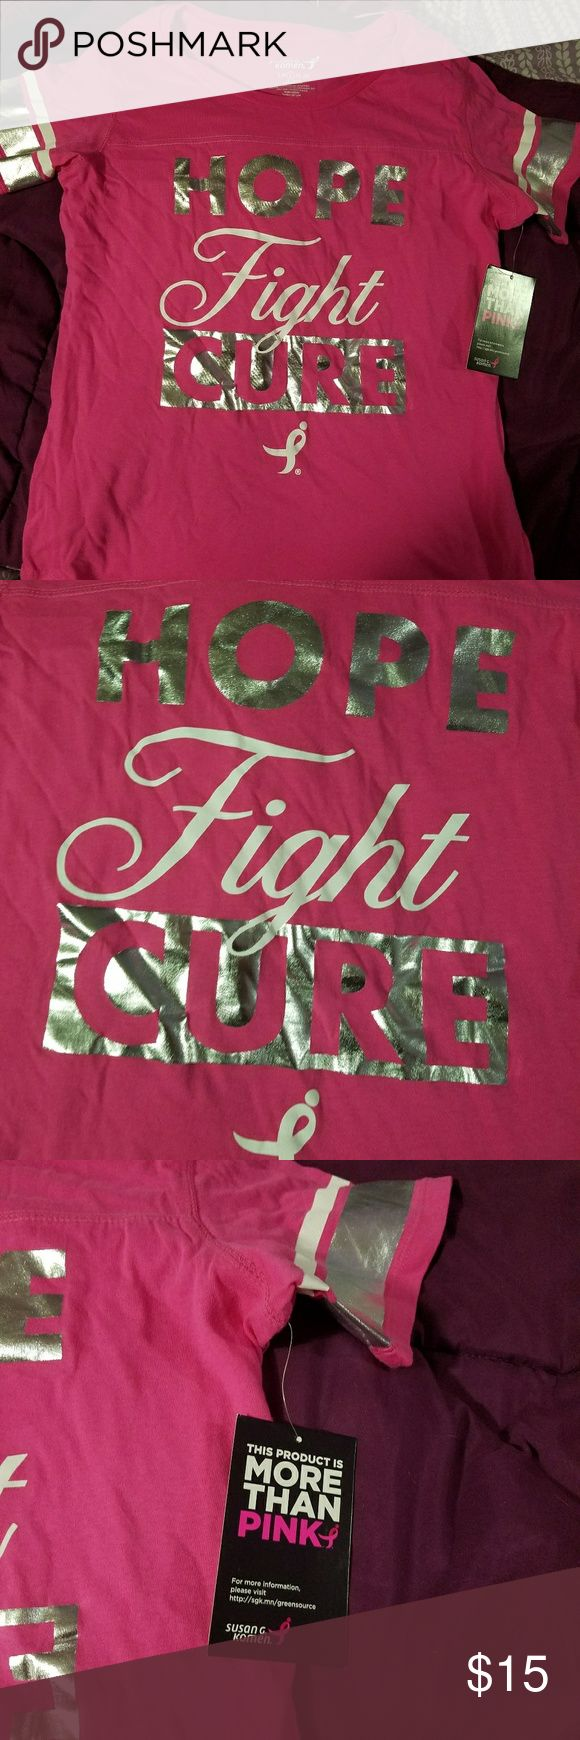 """Susan G Komen pink fight cancer shirt Design looks kind of like a jersey. Pink with silver and white stripes on the arms. Shirt says """"Hope, Fight, Cure"""".  Size large. susan g komen Tops Tees - Short Sleeve"""